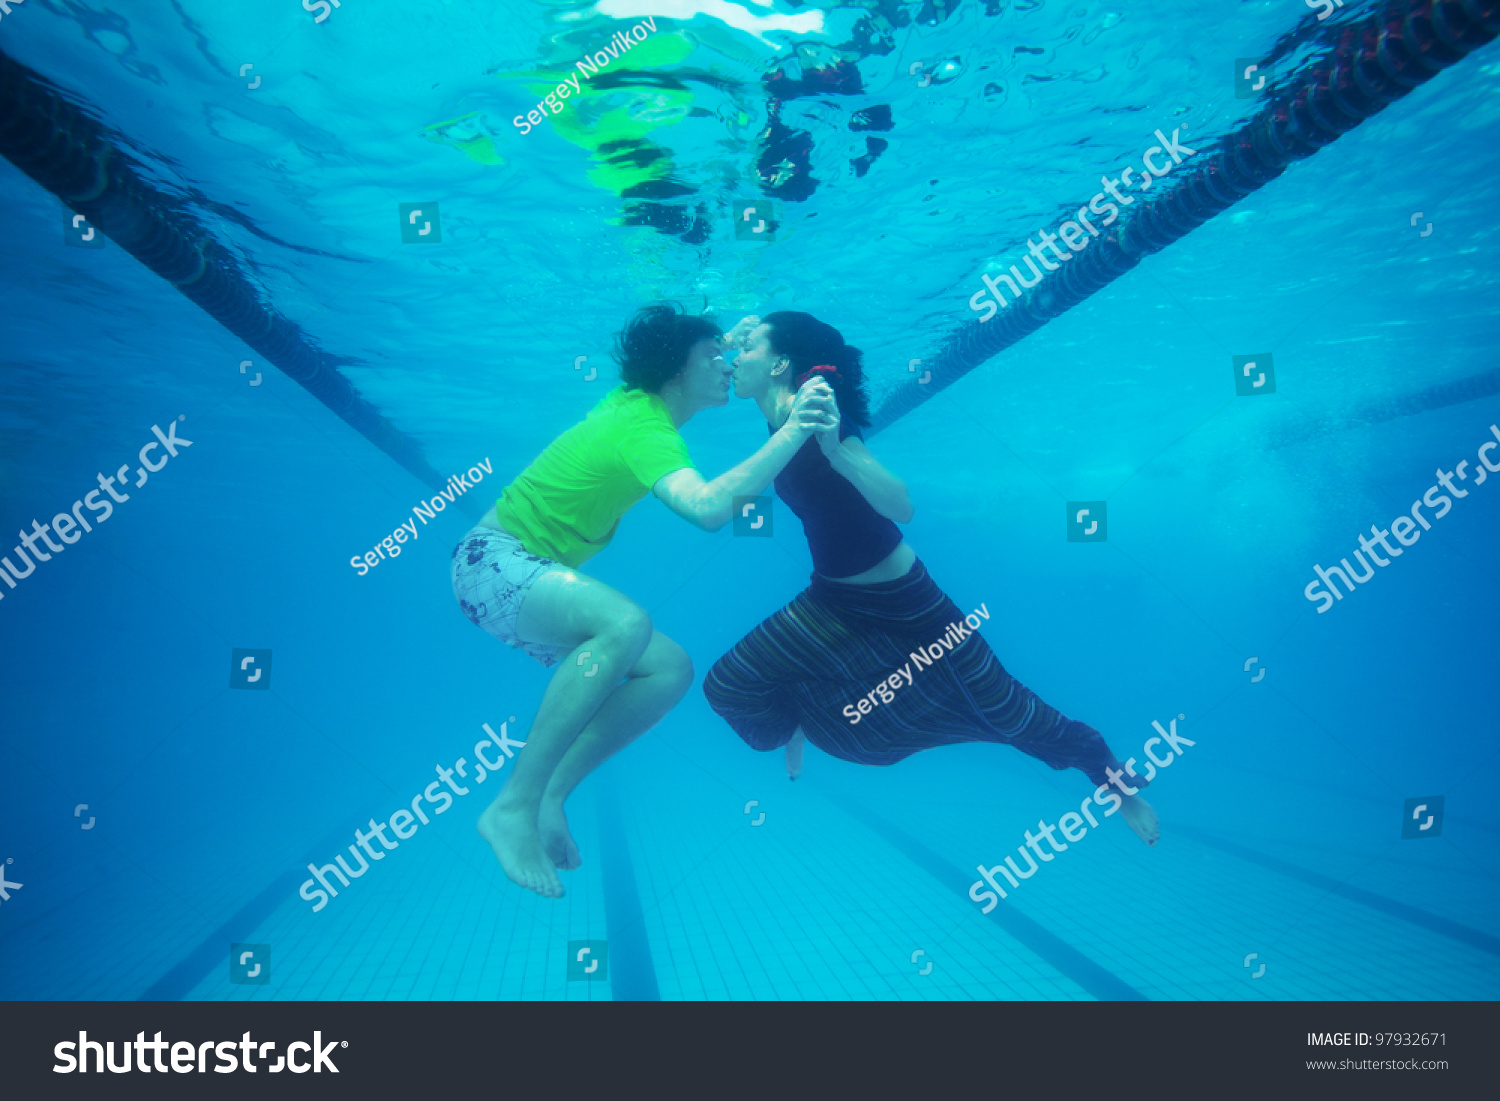 Couple Kissing Underwater In The Pool Stock Photo 97932671 Shutterstock